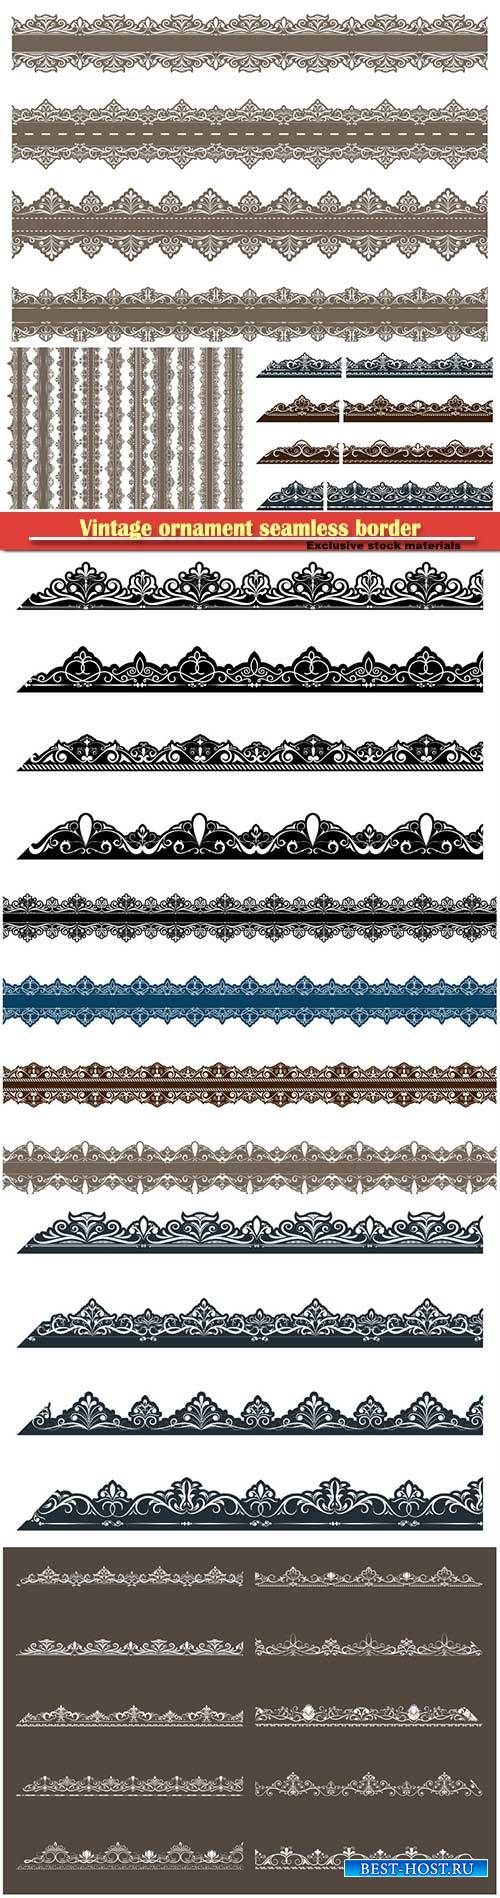 Vintage ornament seamless border in vector illustration